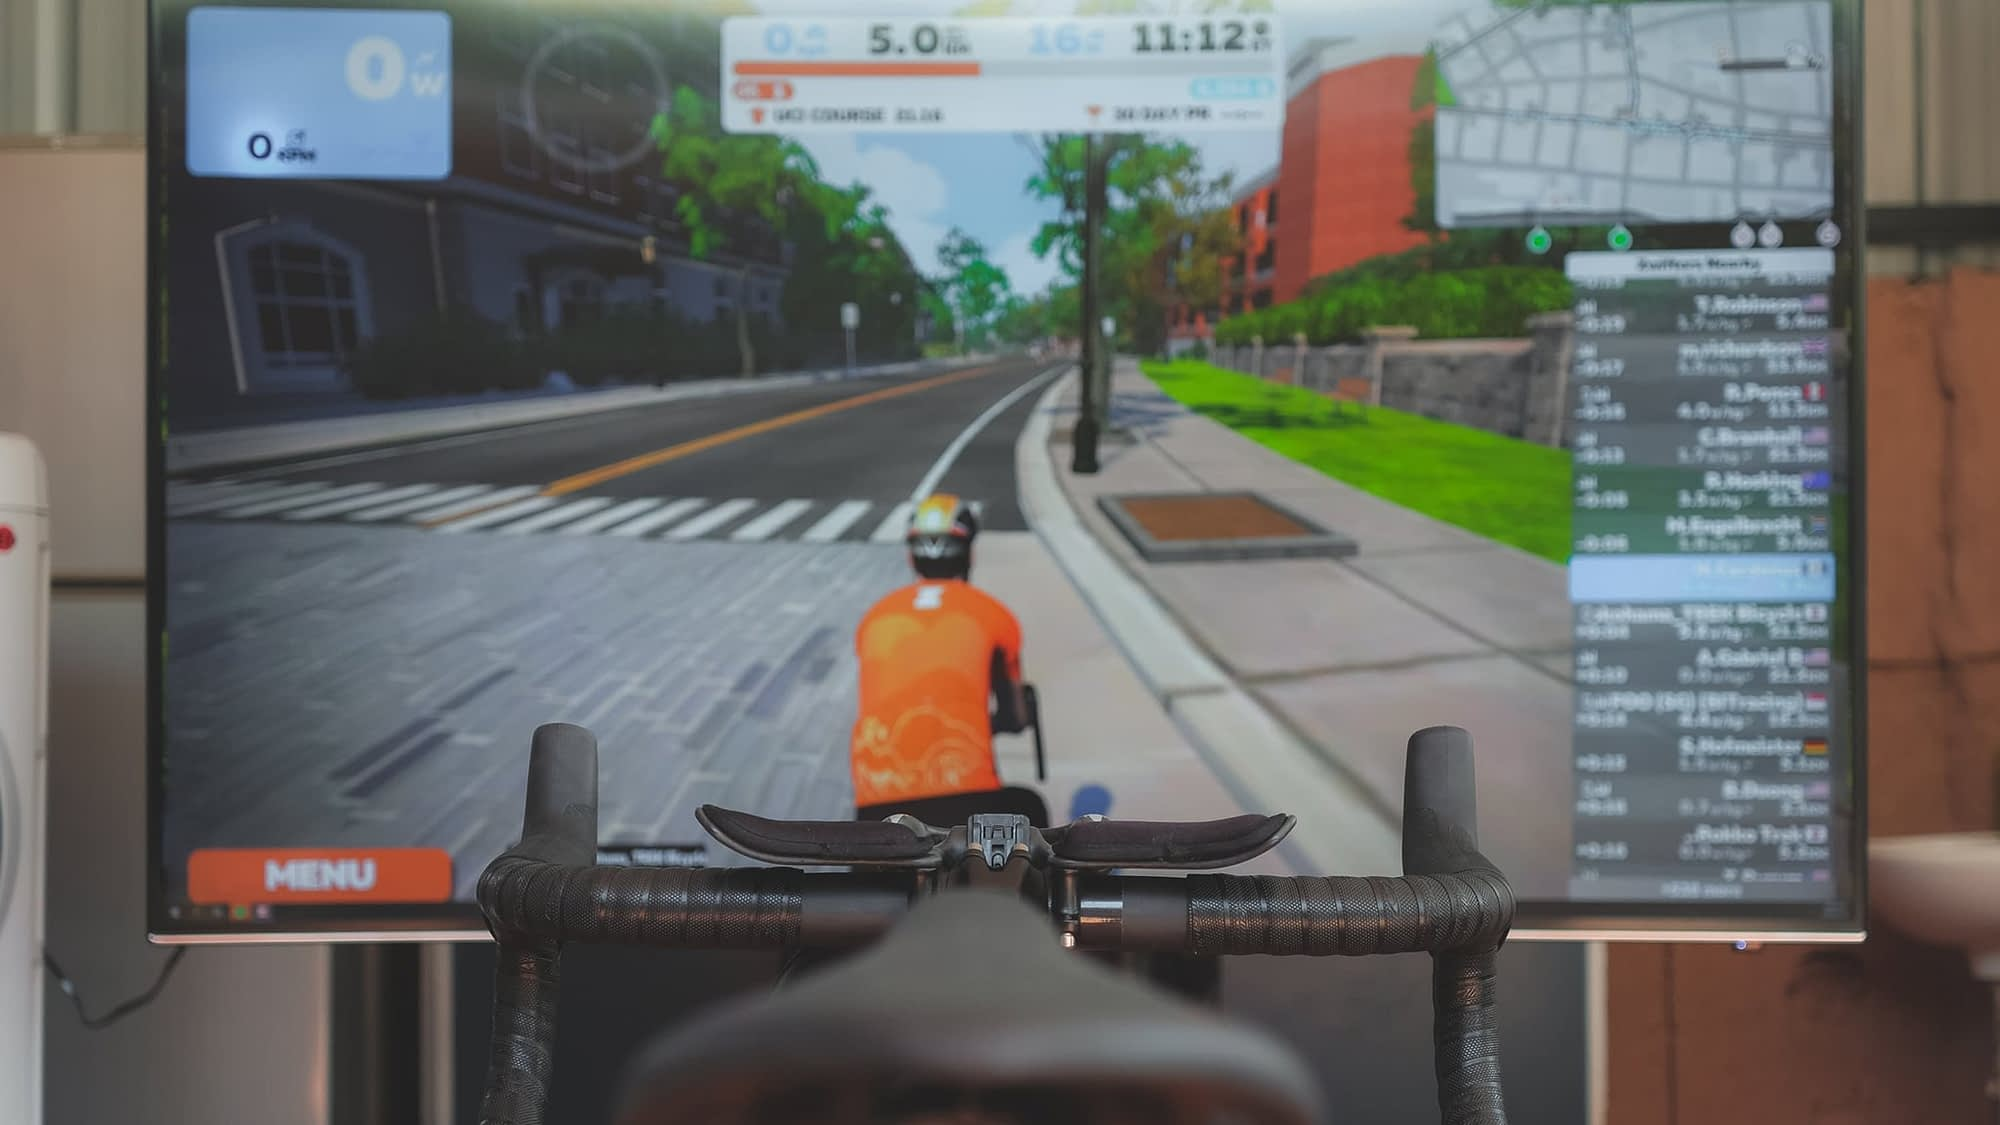 What is Zwift? How to stay fit during the pandemic. 10